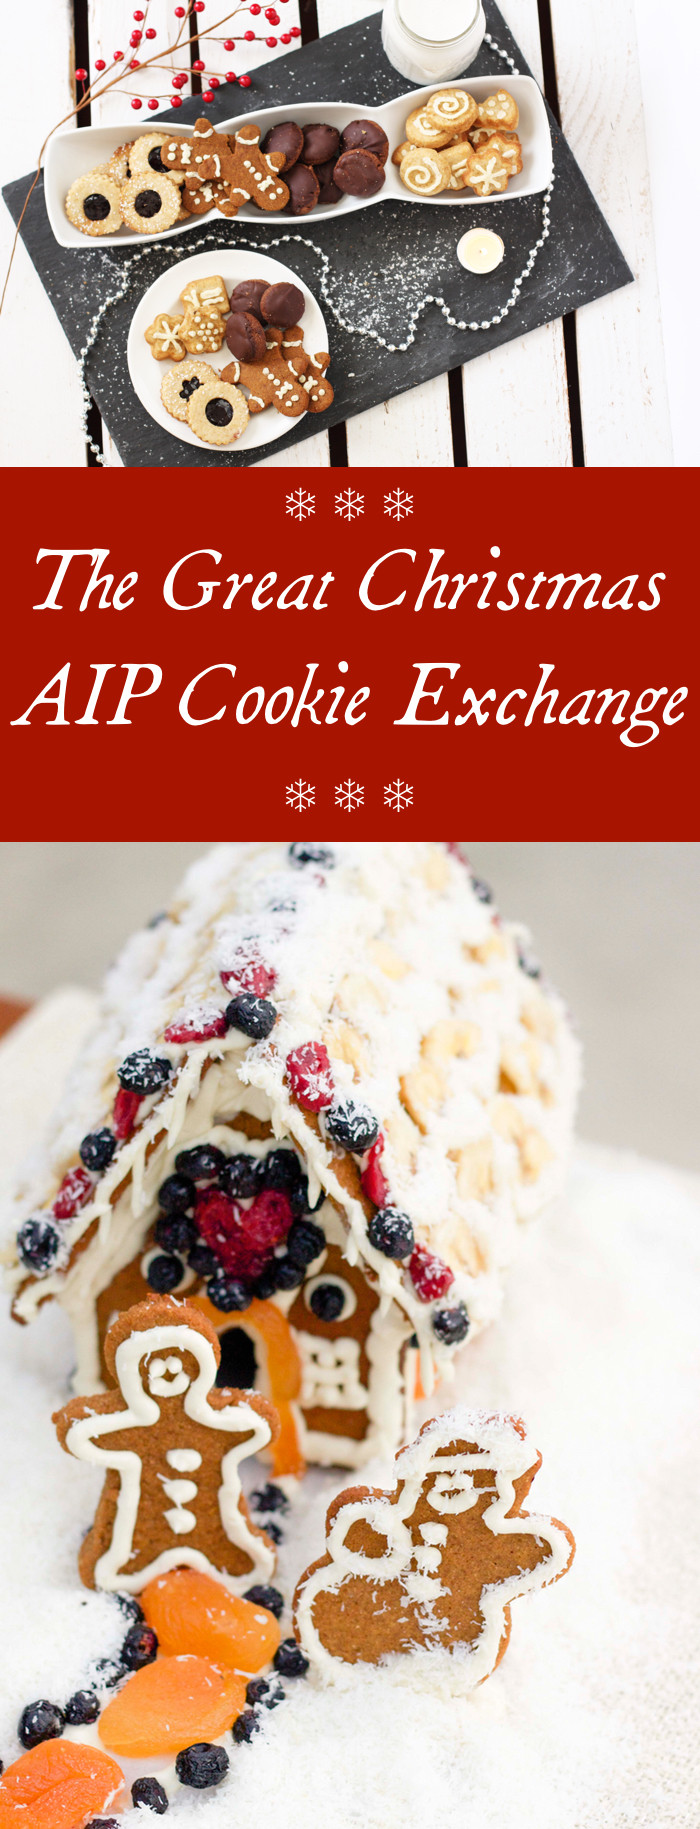 Great Christmas Cookies  The Great Christmas AIP Cookie Exchange